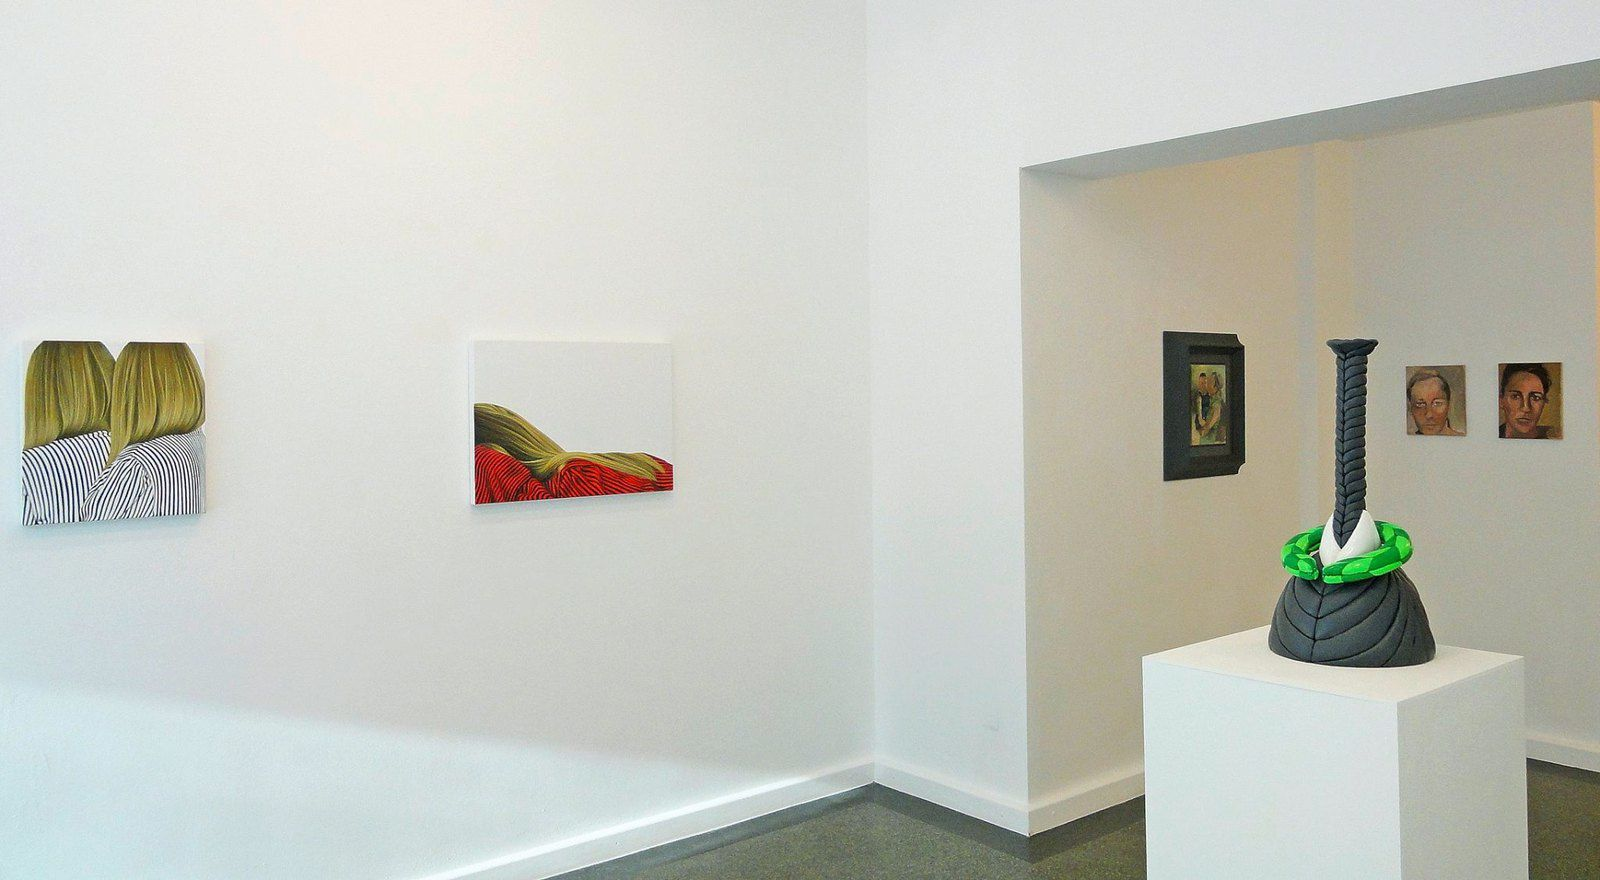 FACES - ChangesFiveX Part Five - Vues d'expo - Galerie Biesenbach, Cologne (Allemagne)